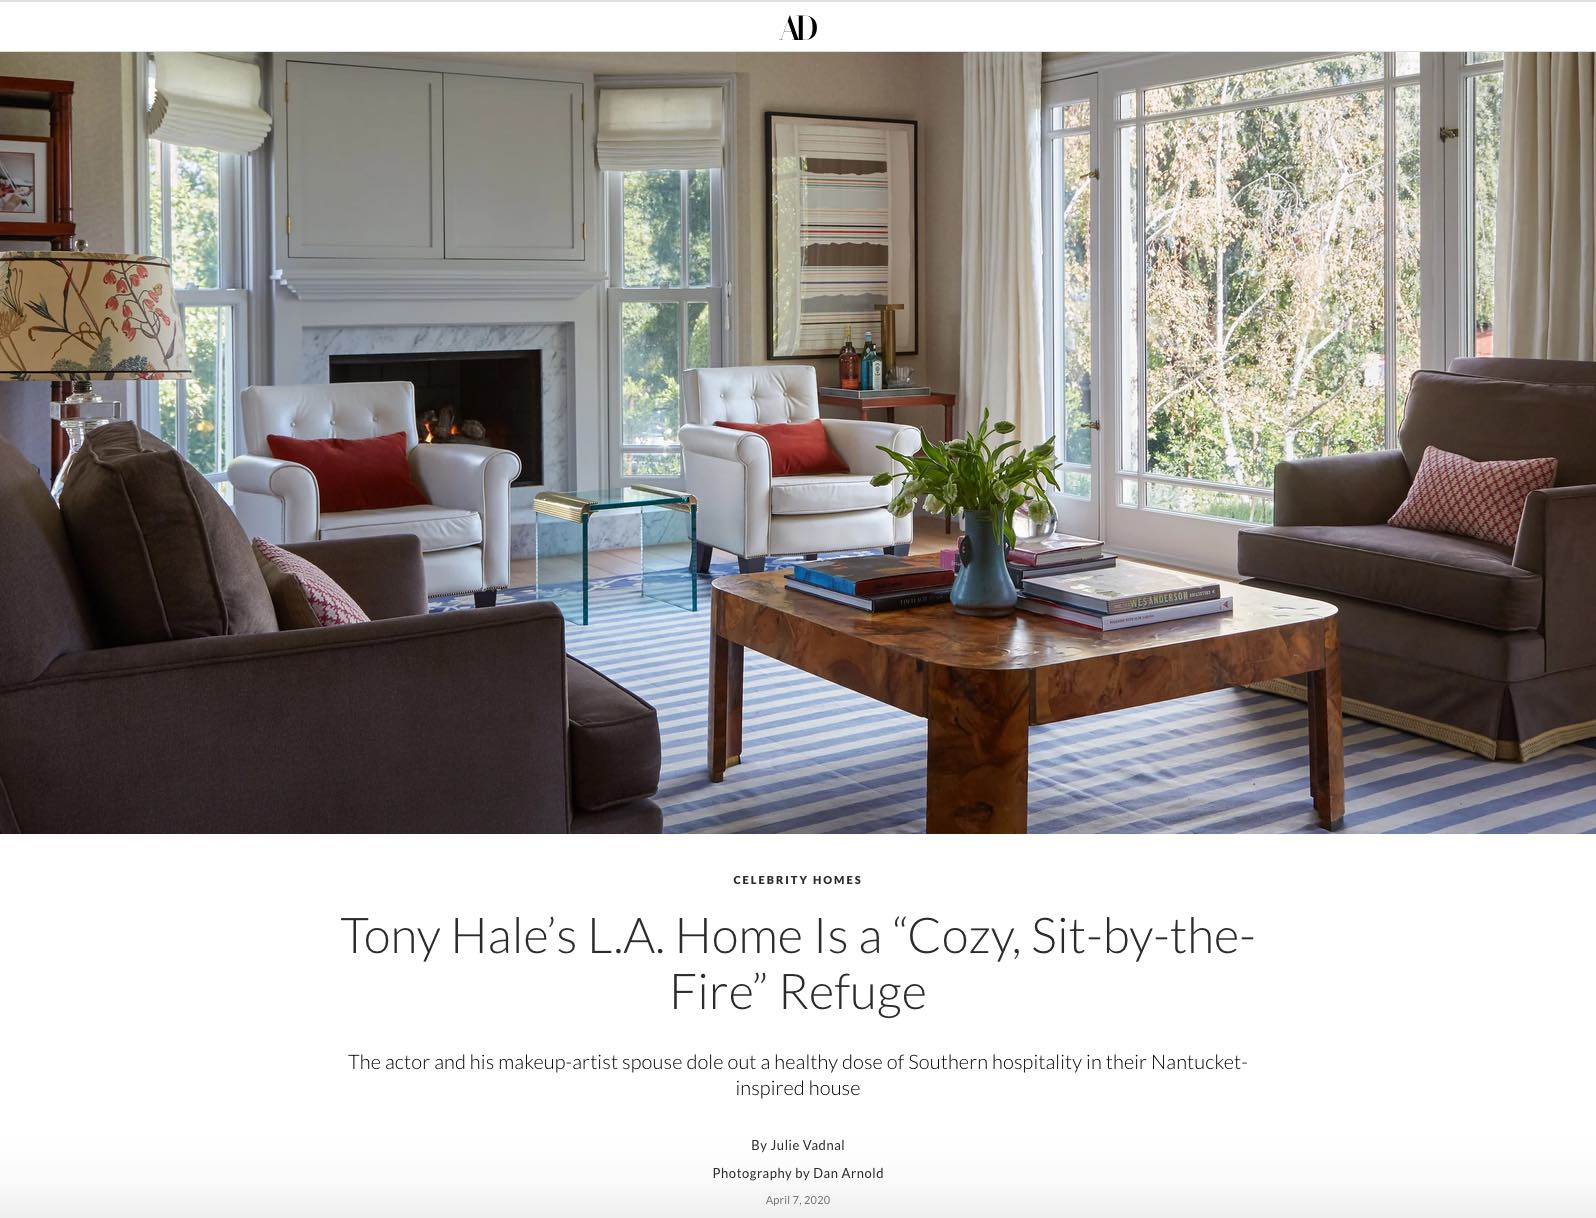 Tony Hale's L.A. Home Is a Cozy, Sit-by-the-Fire Refuge